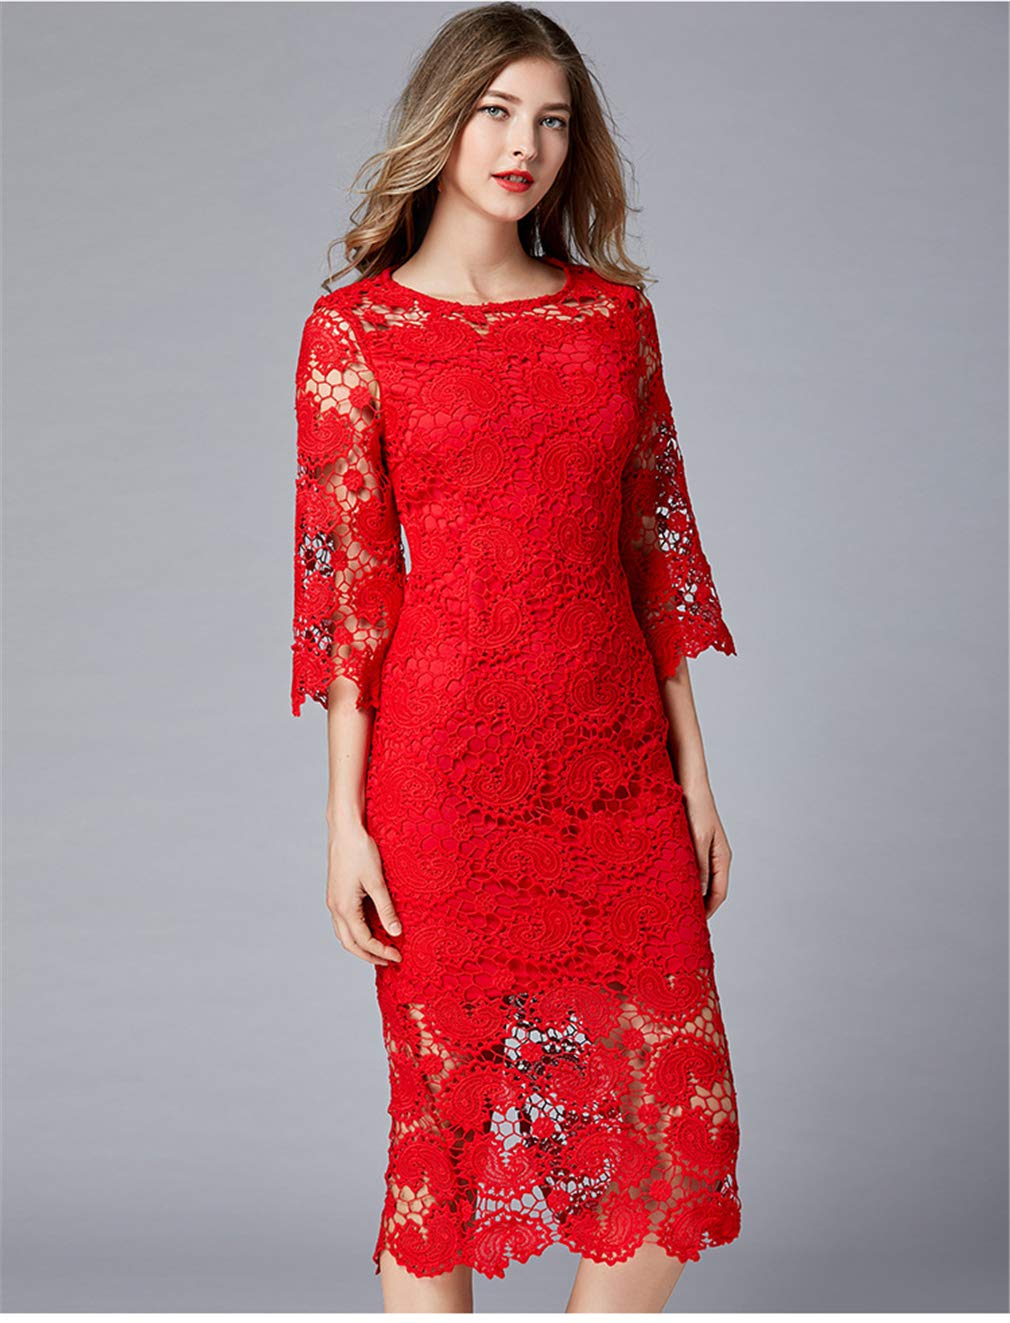 4XL Dress Dinner Party Long Sexy Lace Slim Fit Girl Red Leisure Summer Beach Clothing